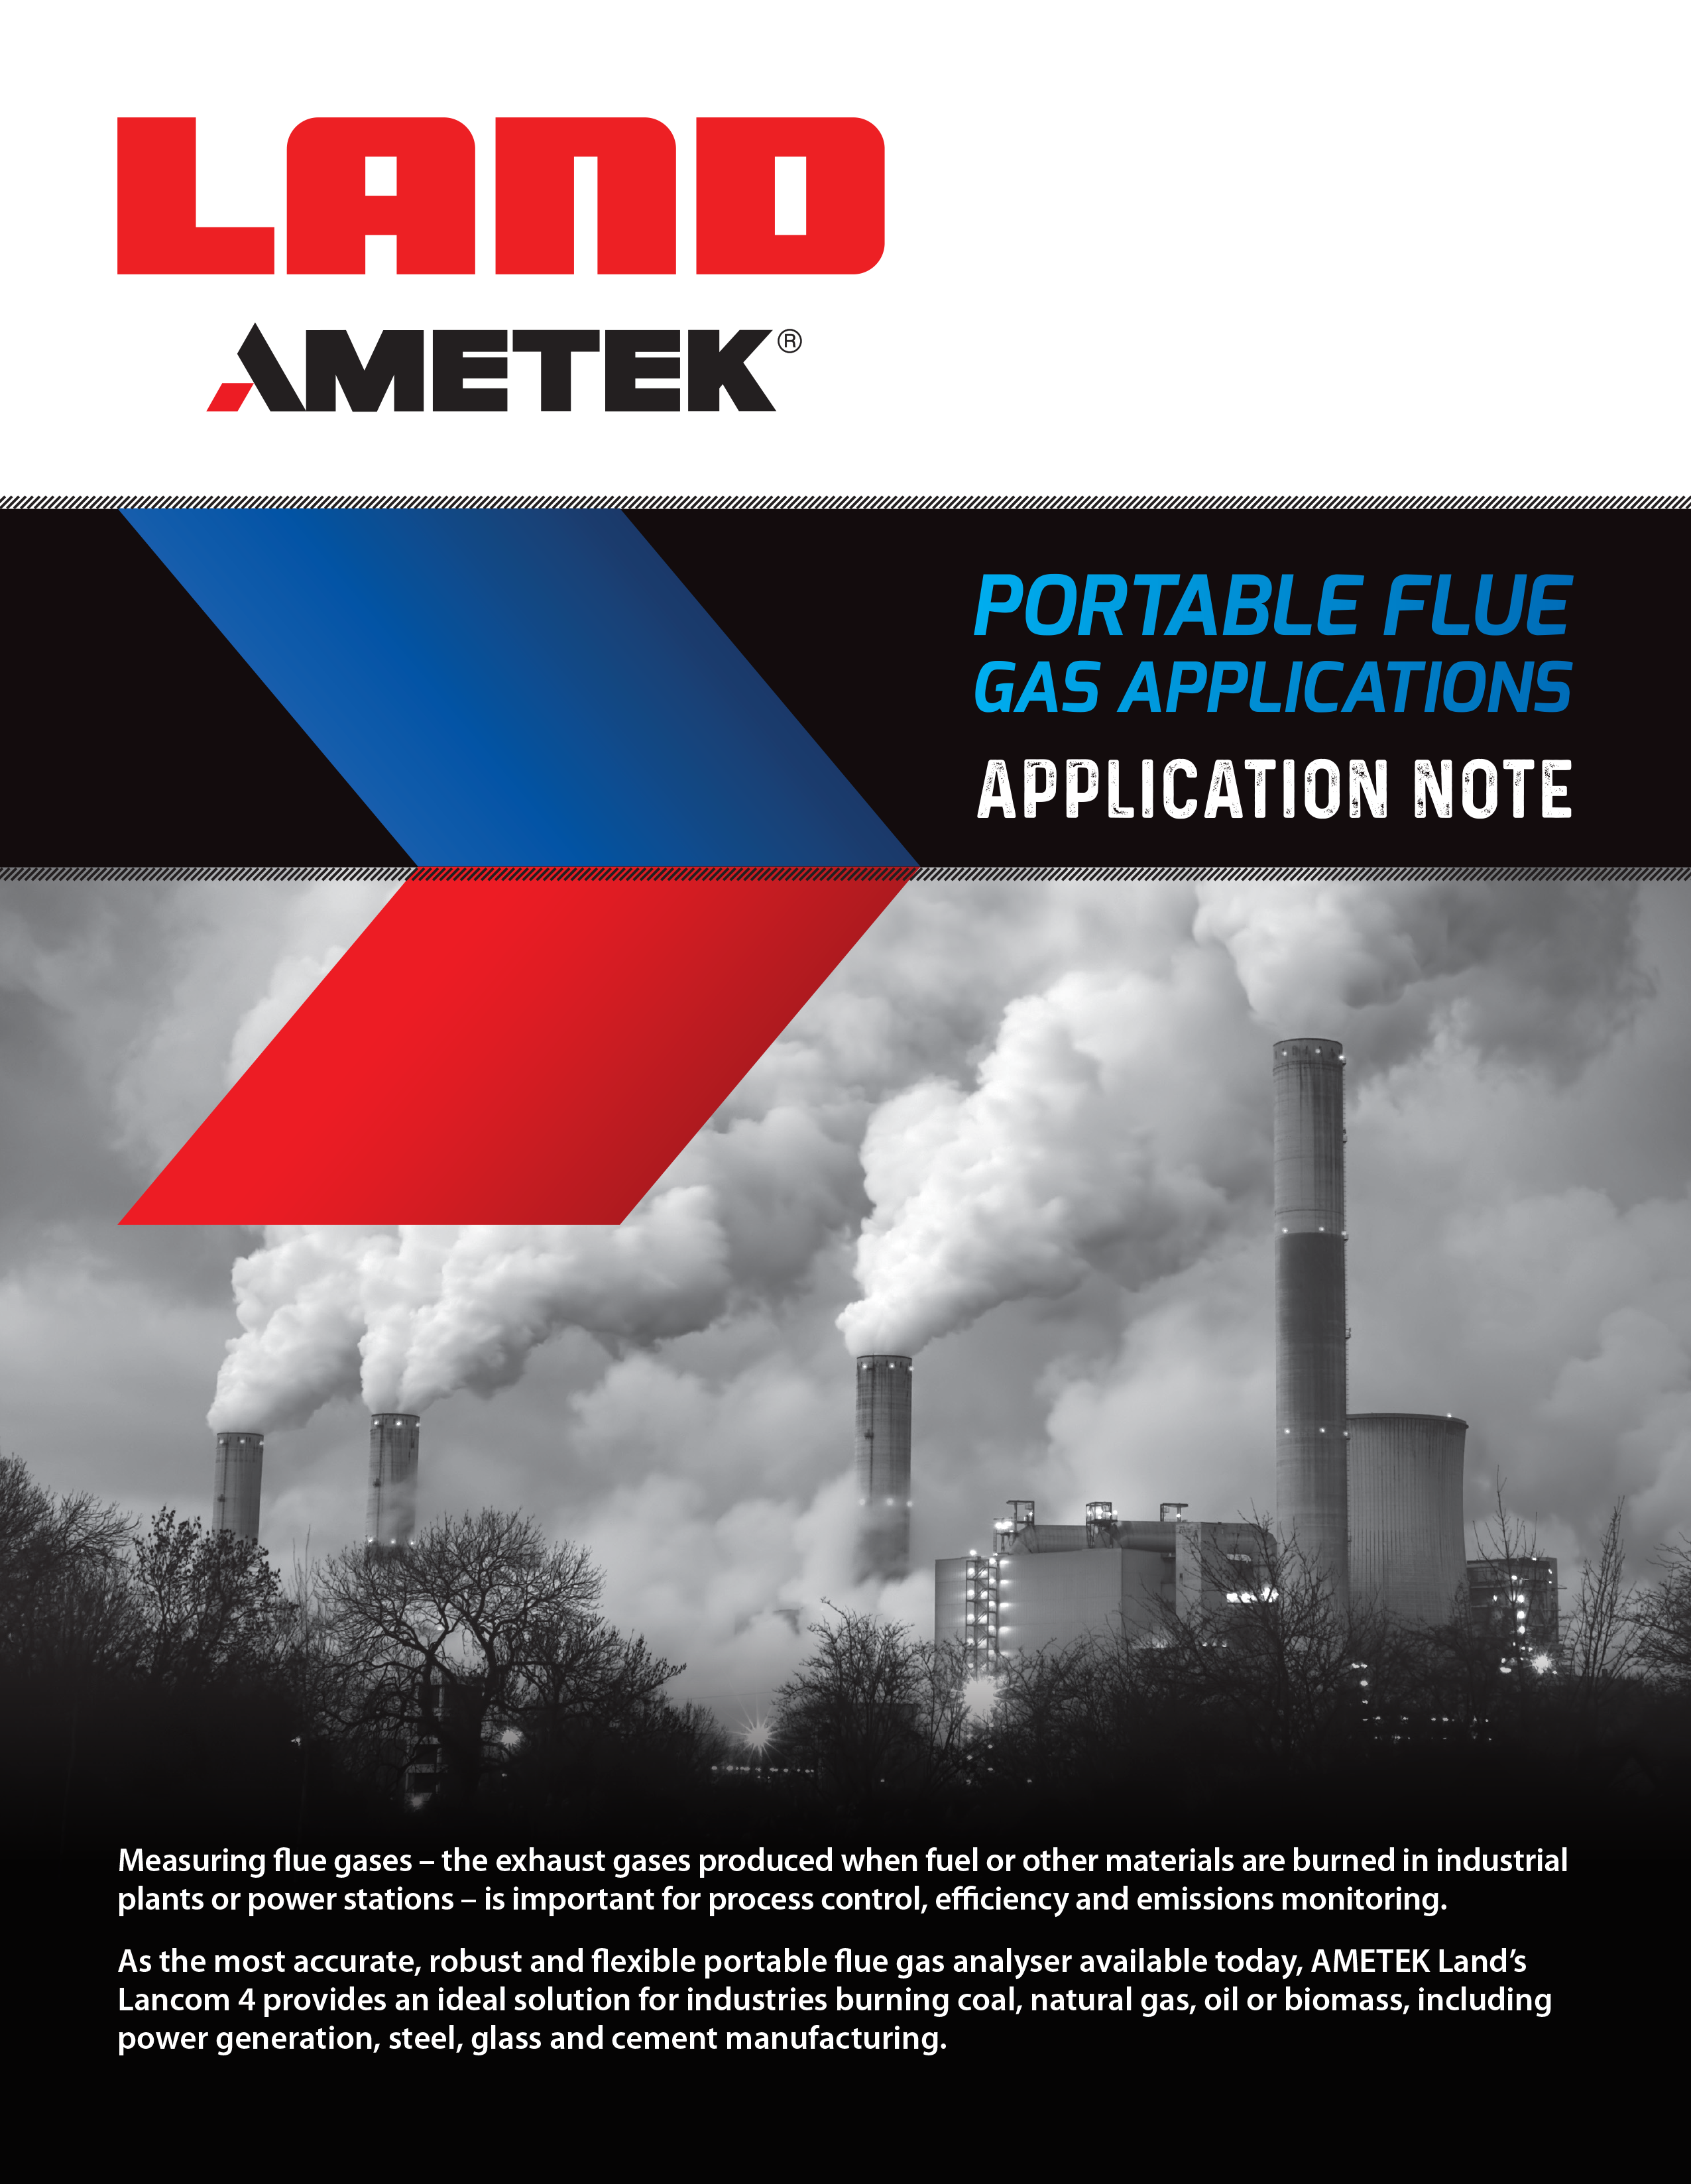 Portable Flue Gas Applications - Application Note